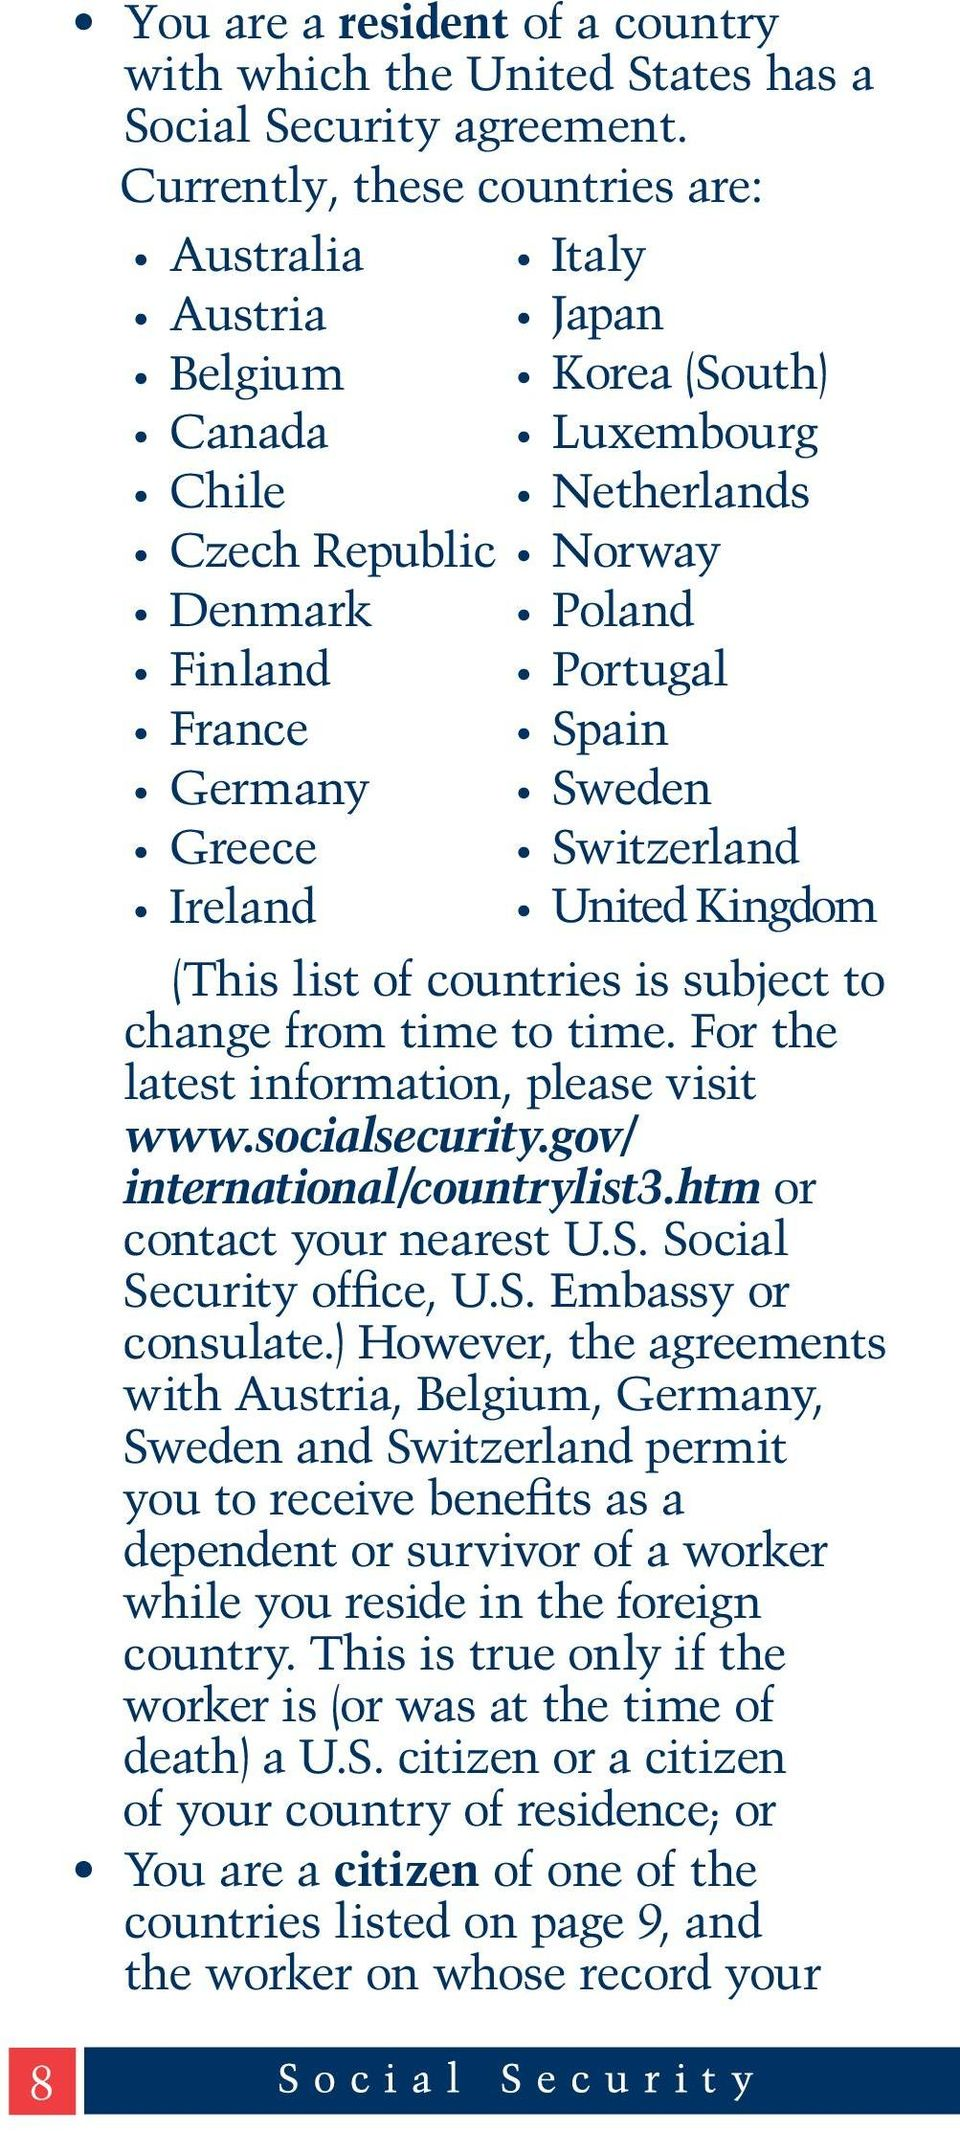 Portugal Spain Sweden Switzerland United Kingdom (This list of countries is subject to change from time to time. For the latest information, please visit www.socialsecurity.